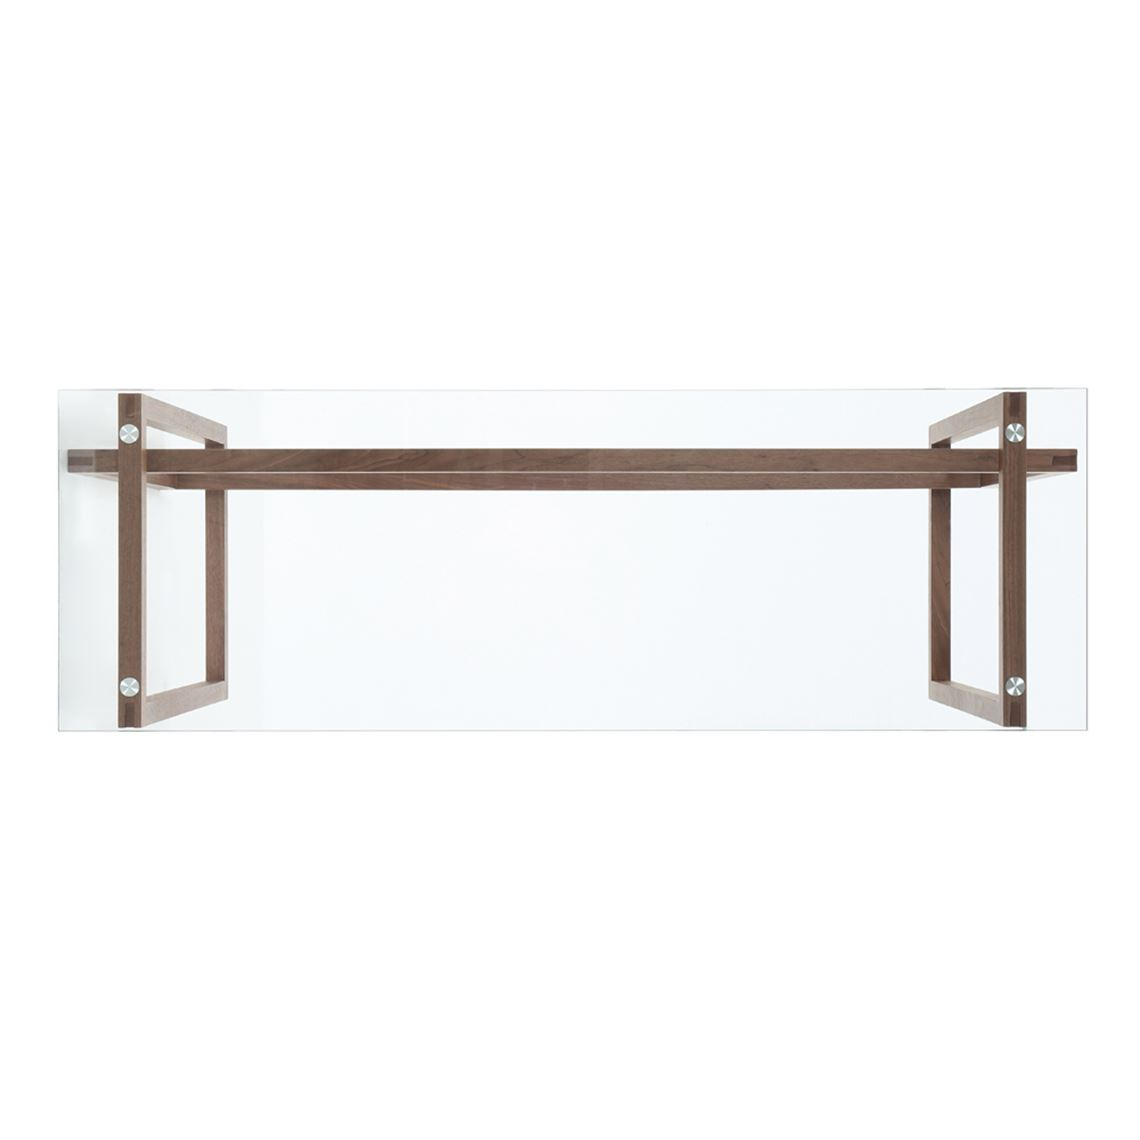 Kyra Console Table | Freedom Throughout Kyra Console Tables (Photo 7 of 30)